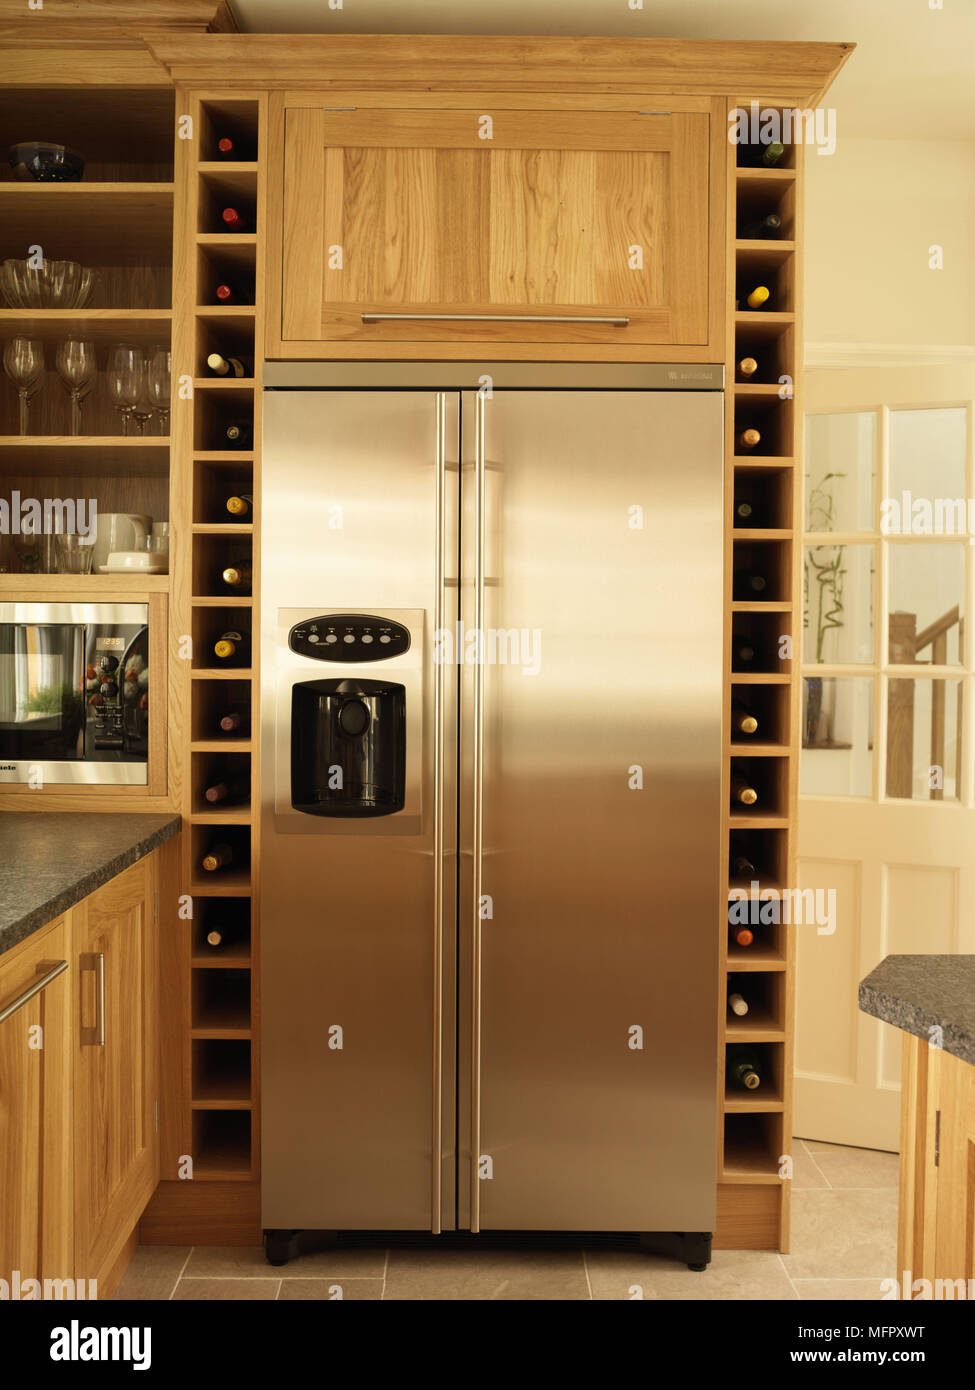 Stainless Steel Fridge And Built In Wine Rack Storage In Kitchen With Wood  Fitted Units